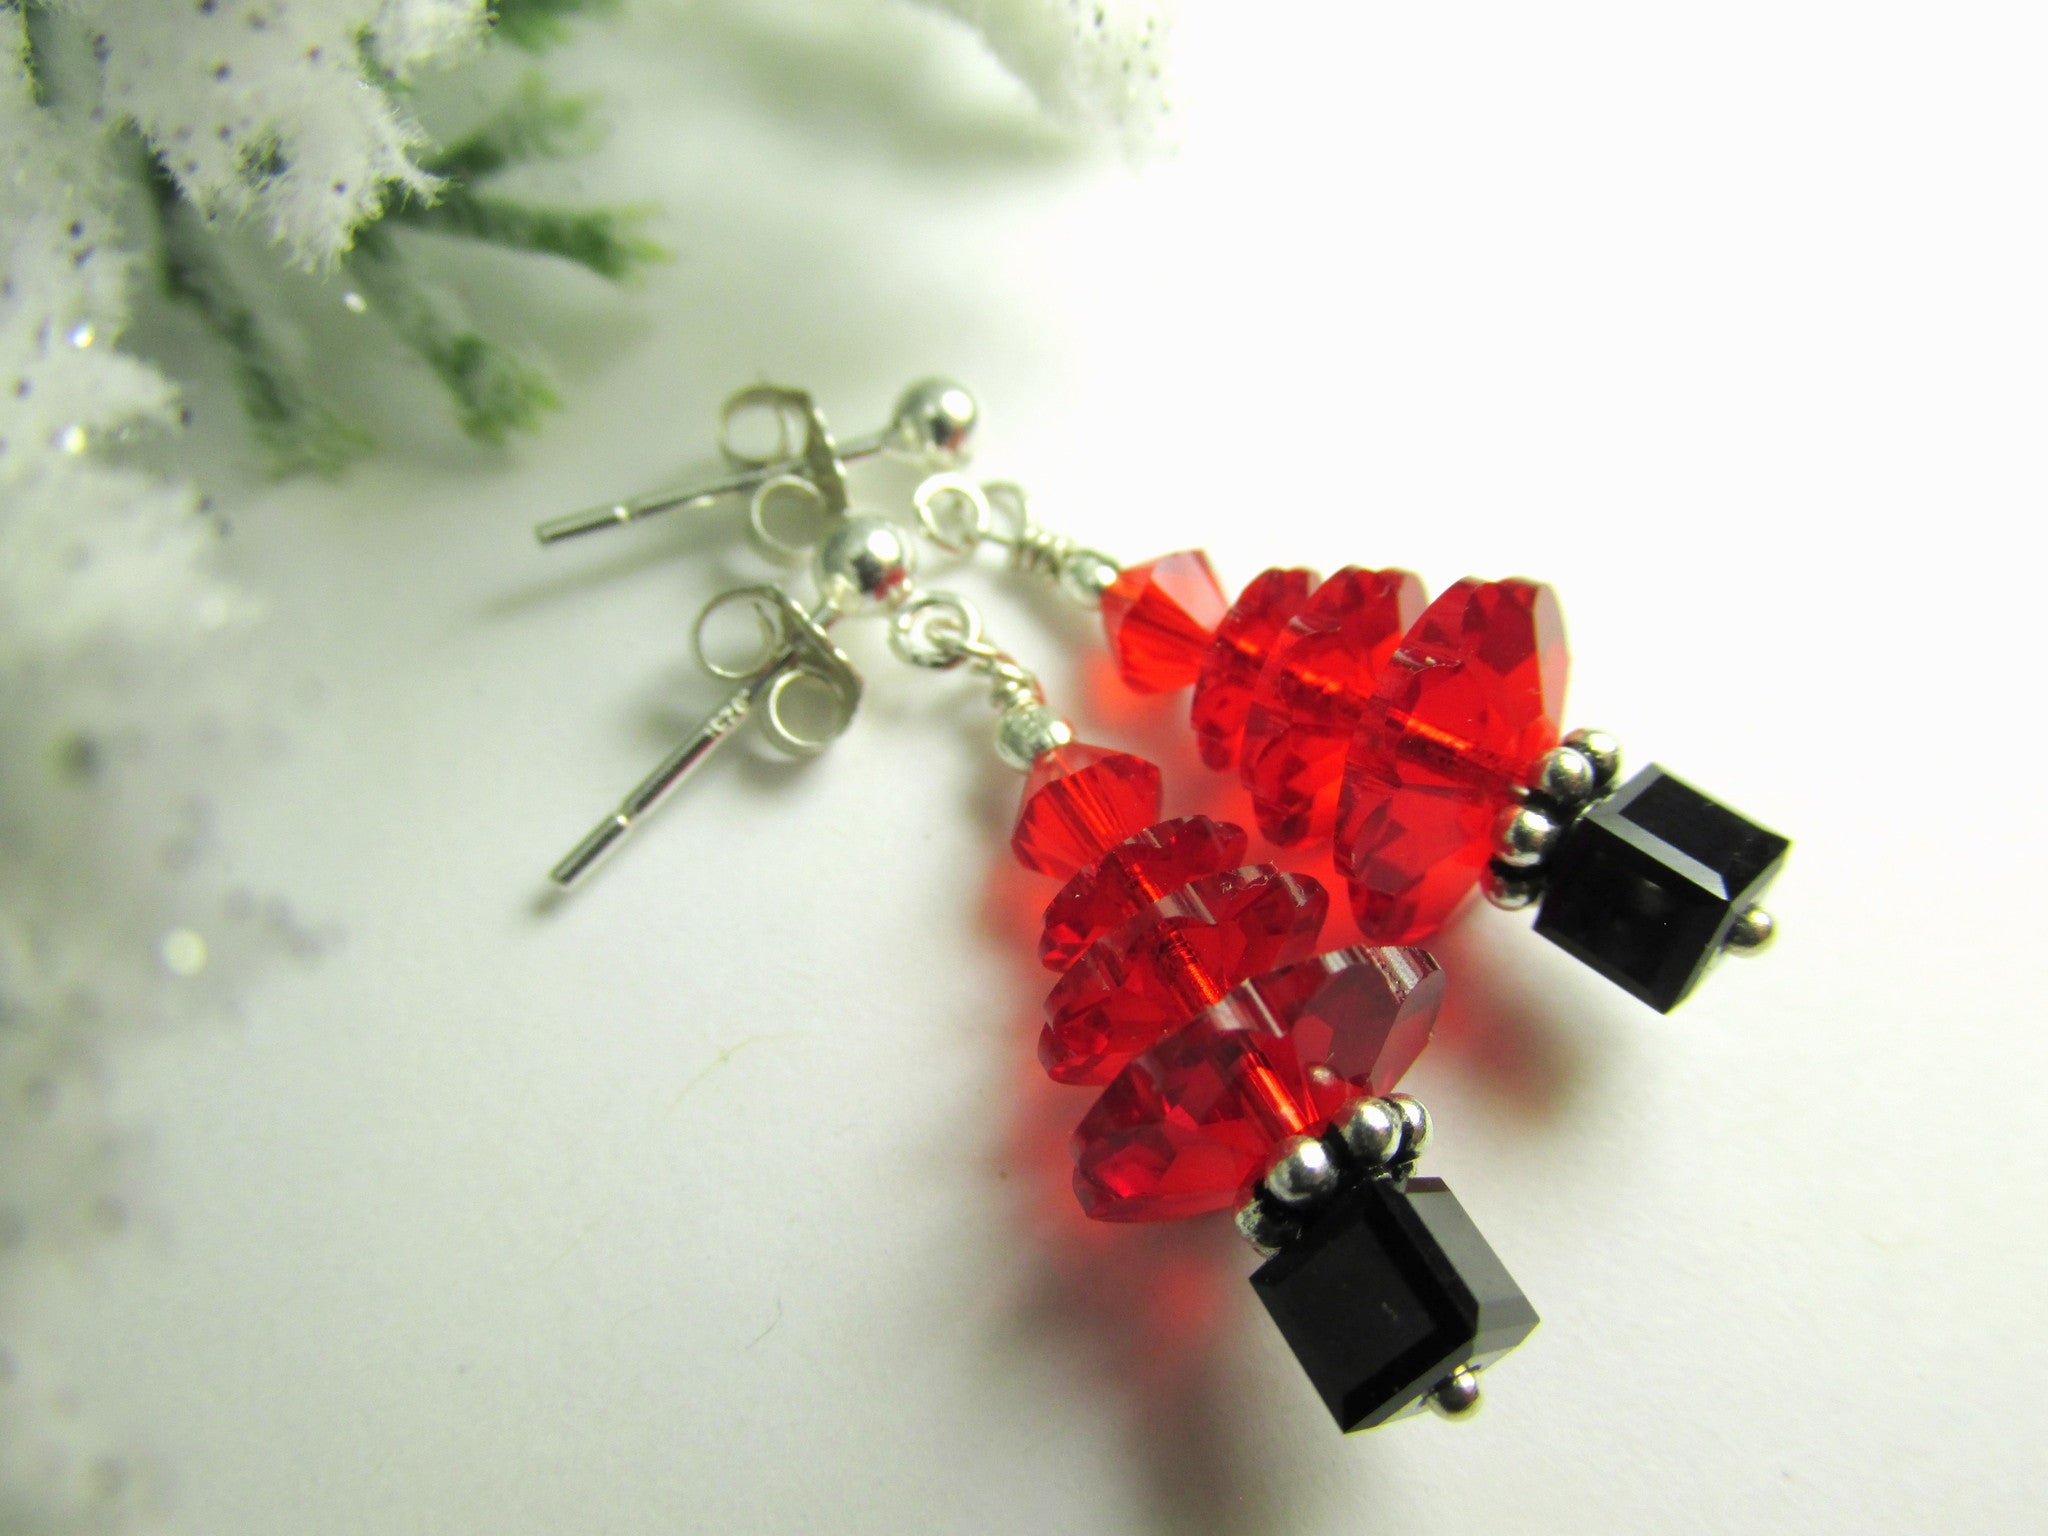 Christmas Tree Holiday Earrings in Swarovski Light Siam Red and Black - Odyssey Creations